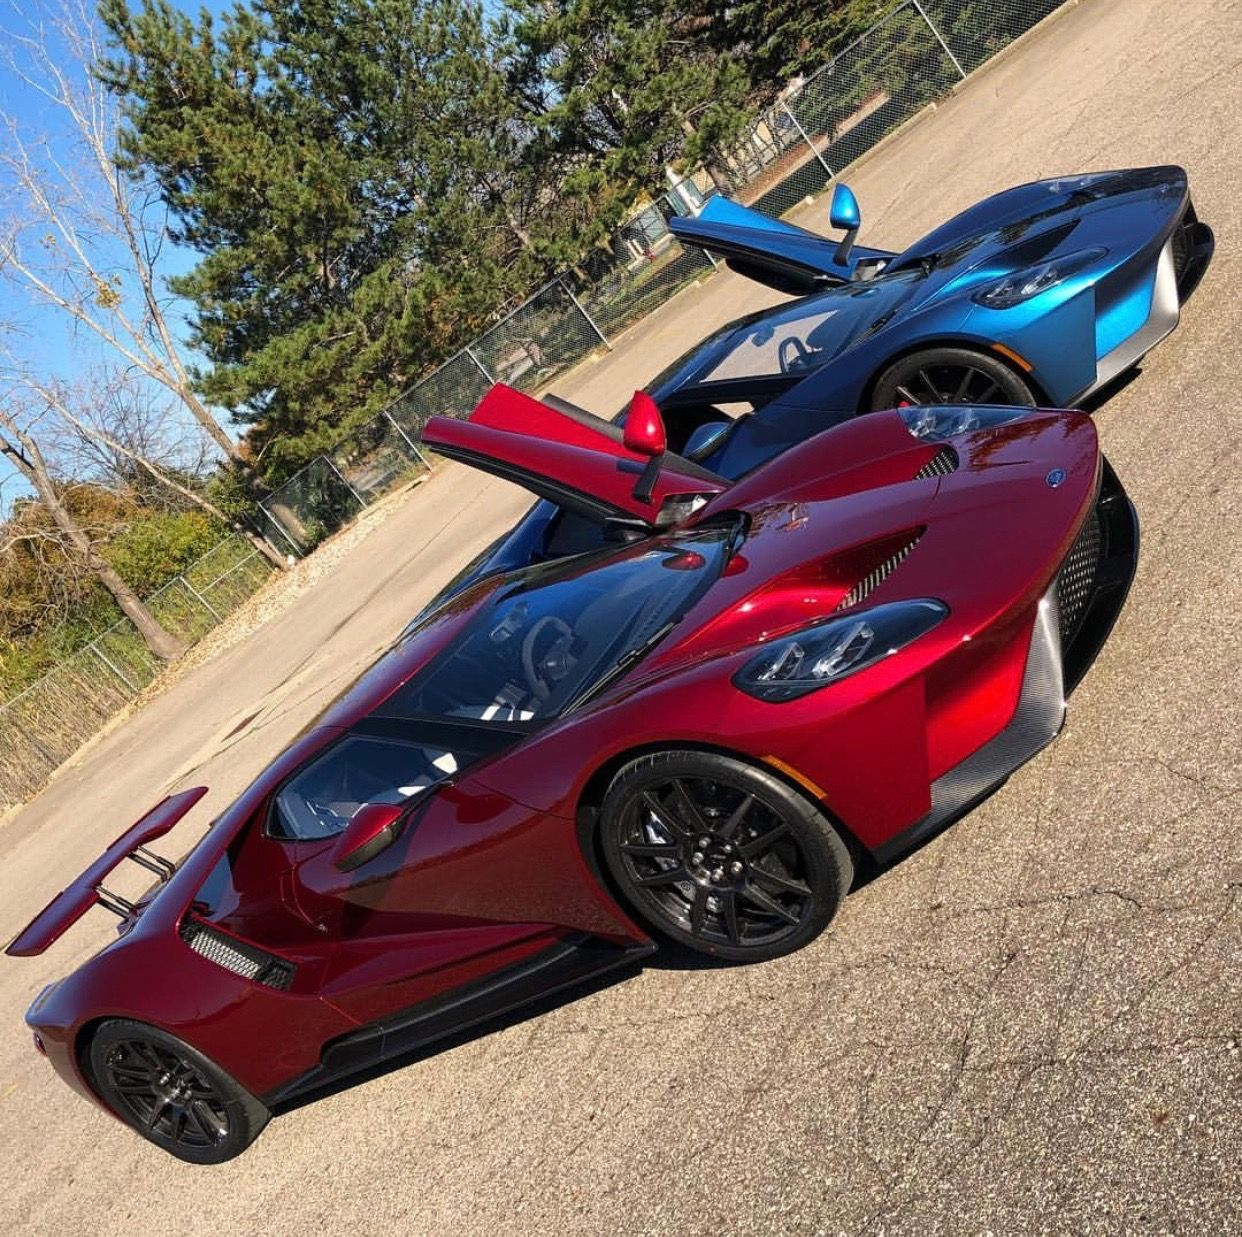 Exotic Car Rental Ford Gt: Two Ford GT's Painted In Liquid Red And Liquid Blue Photo